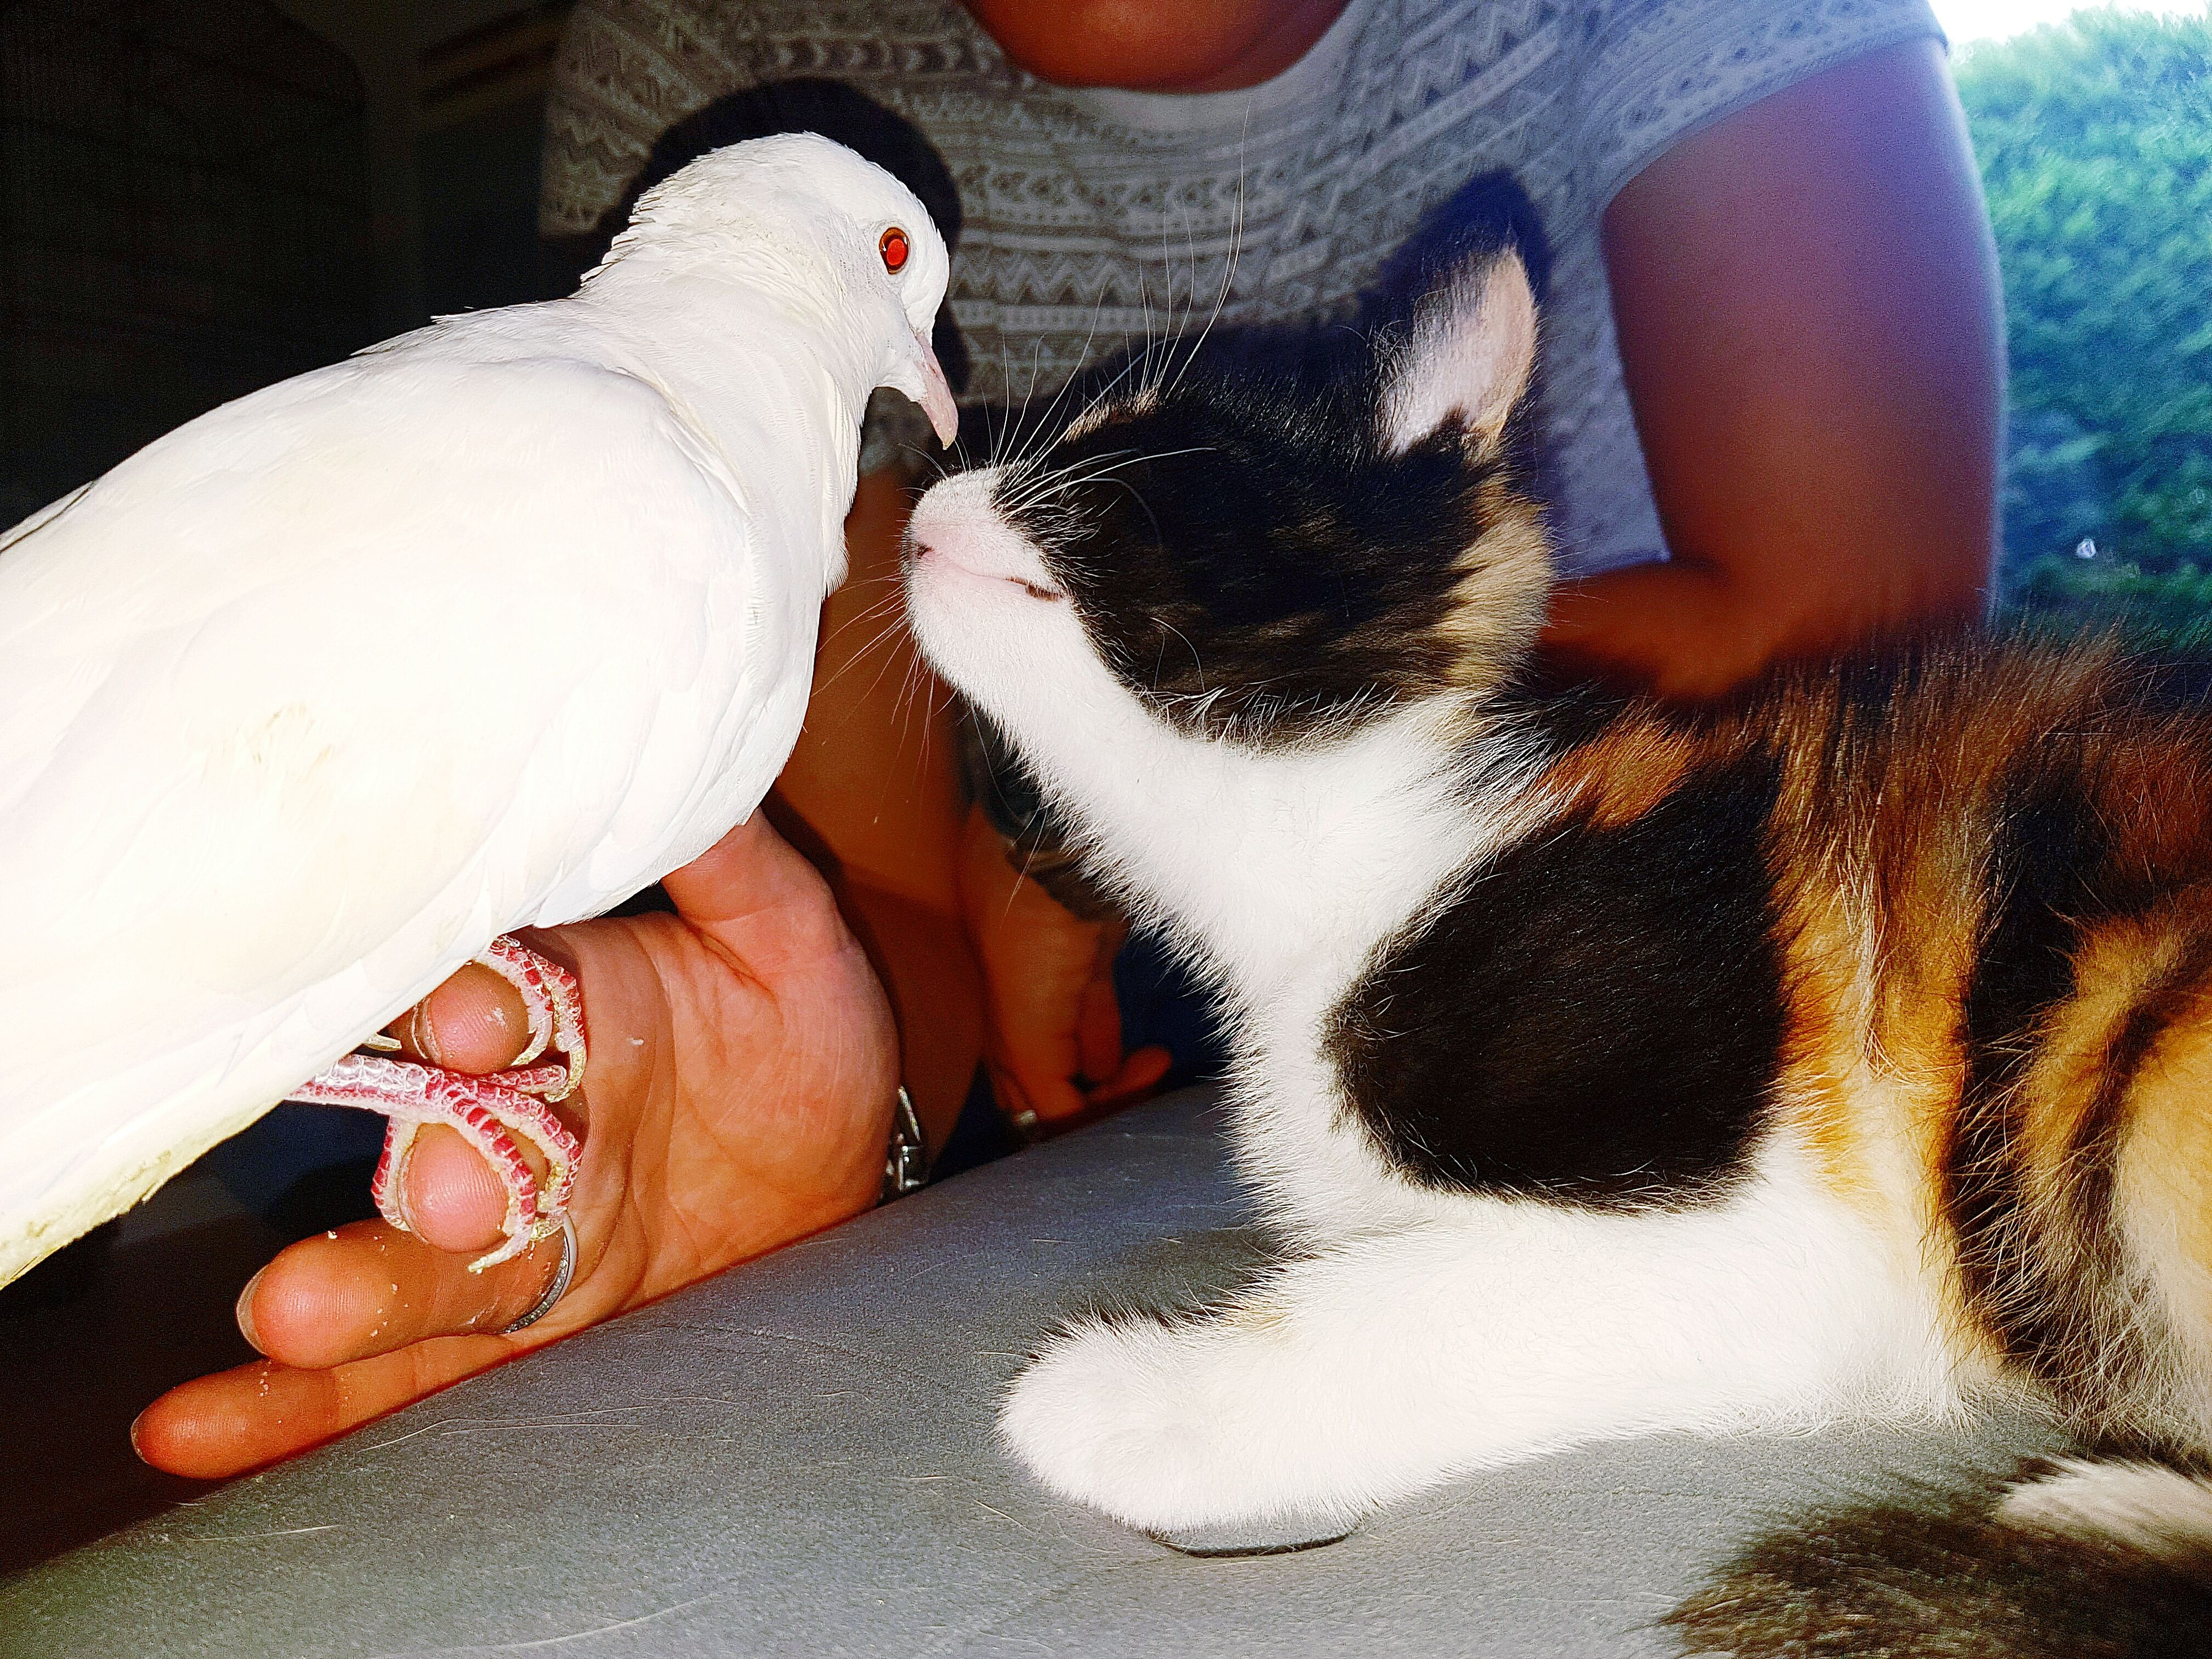 one animal, togetherness, relaxation, domestic animals, pets, person, pampered pets, loyalty, zoology